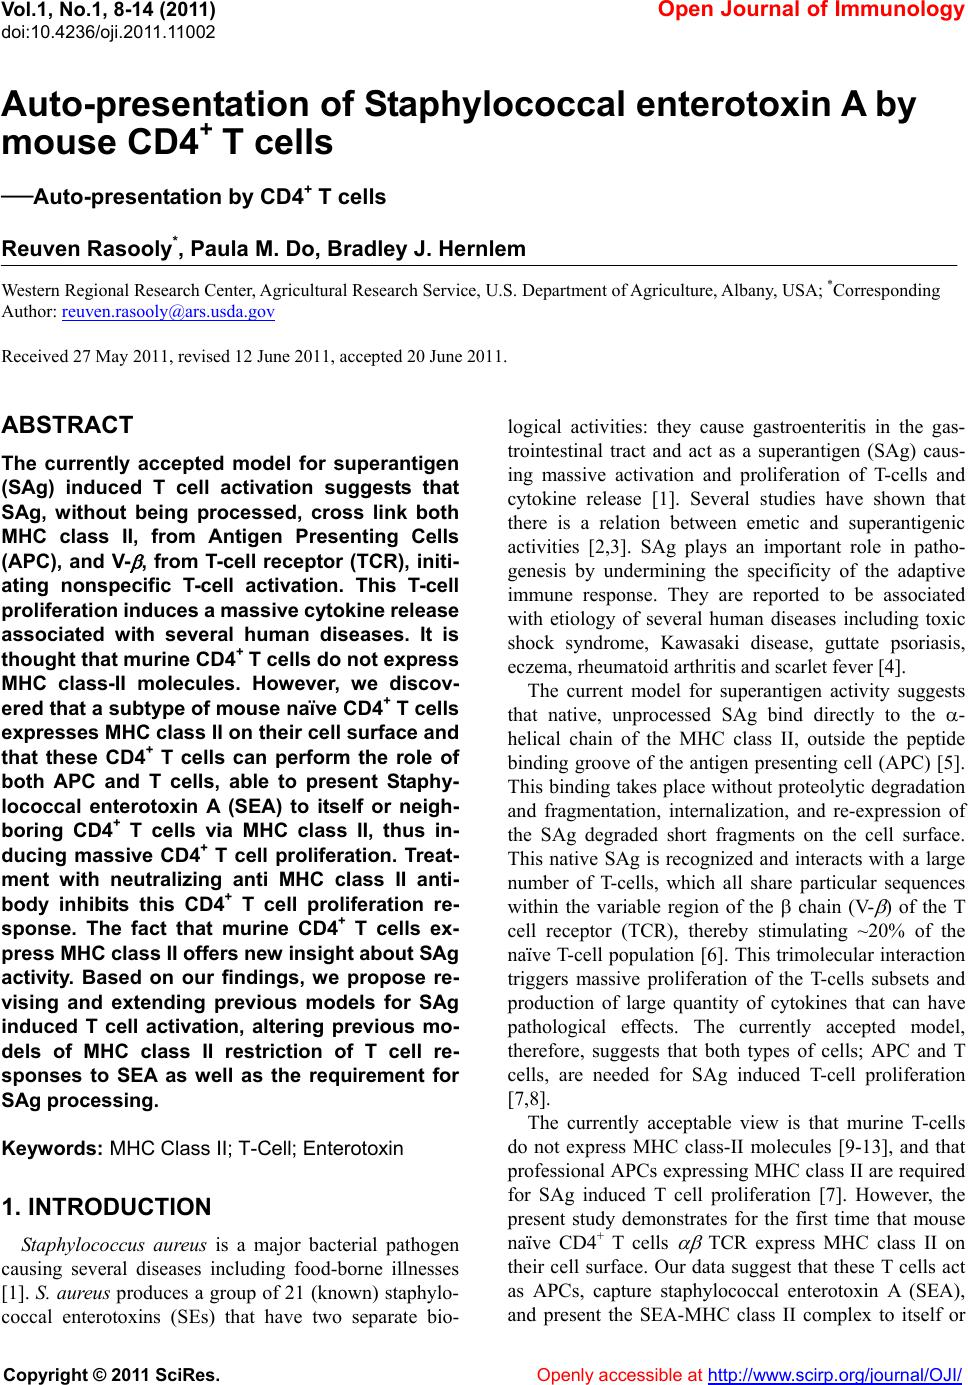 Auto-presentation of Staphylococcal enterotoxin A by mouse